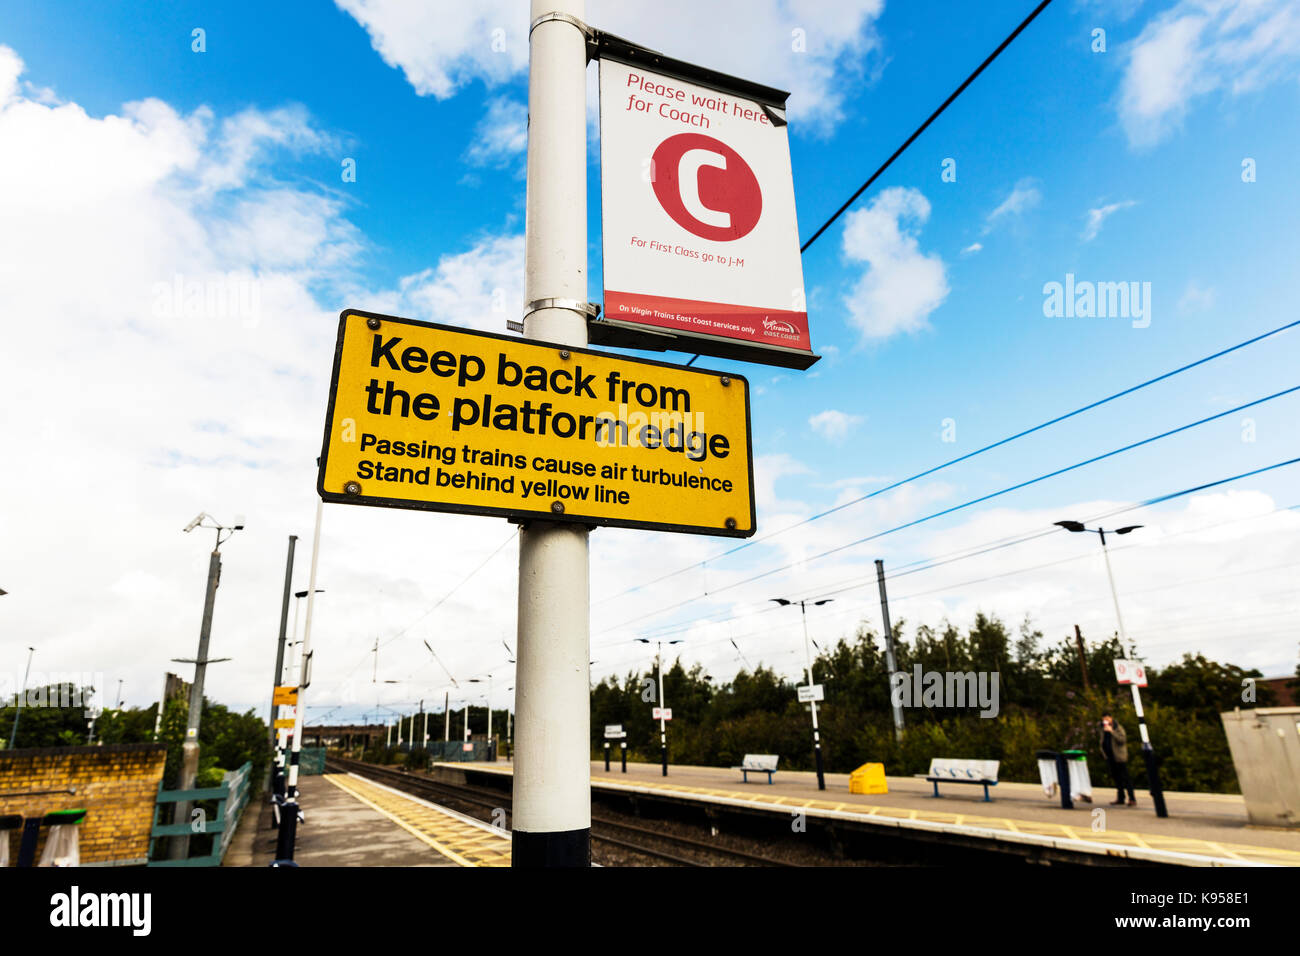 Train warning sign, train station warning sign, trains cause air turbulence sign,  passing trains danger sign, stand - Stock Image